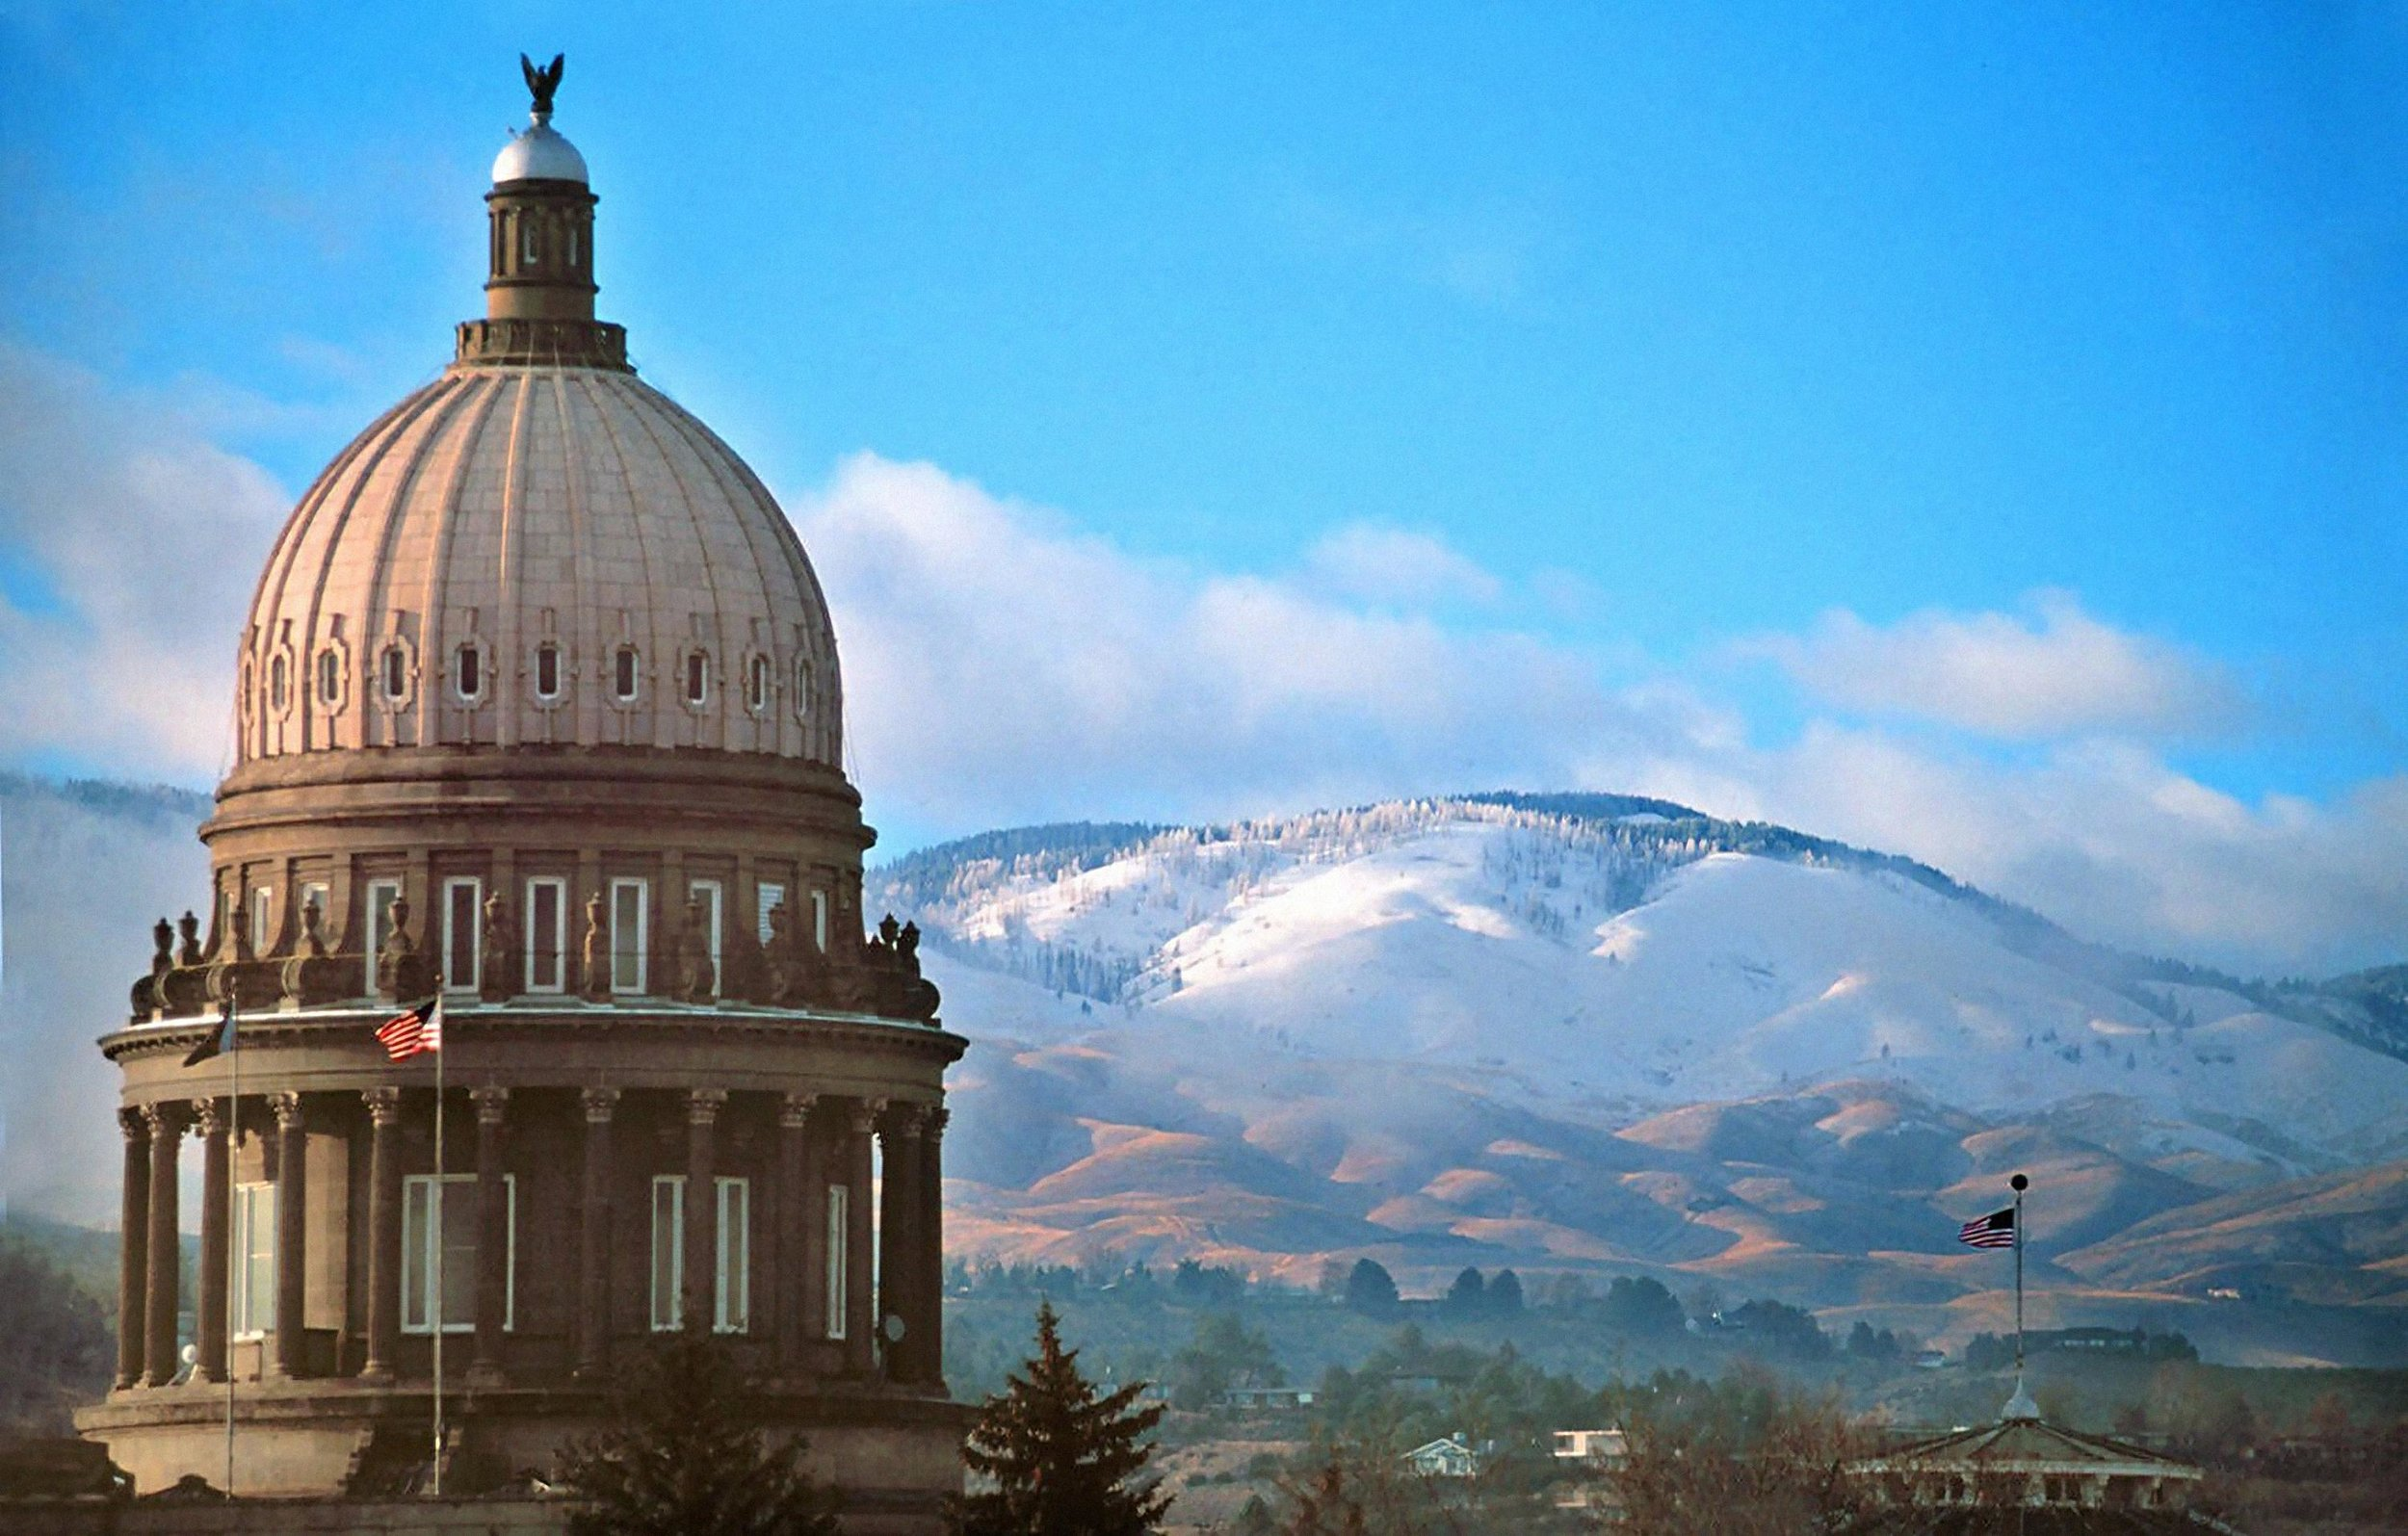 Advancing public policy and support for land trusts across Idaho